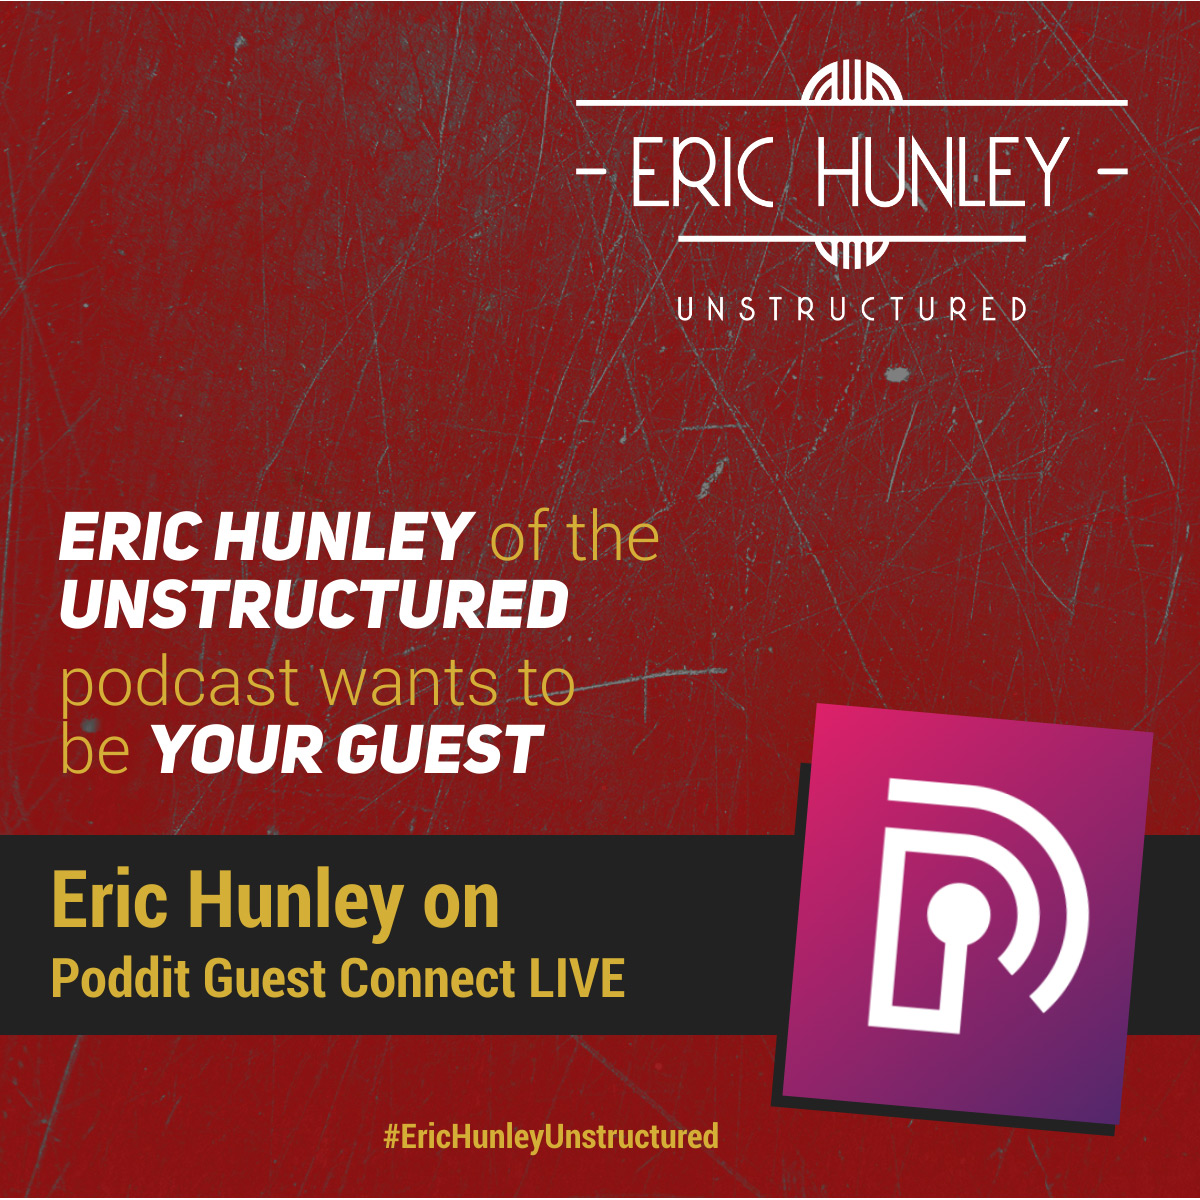 Eric Hunley Podcast Appearance Interviews - Poddit Guest Connect LIVE Square Post